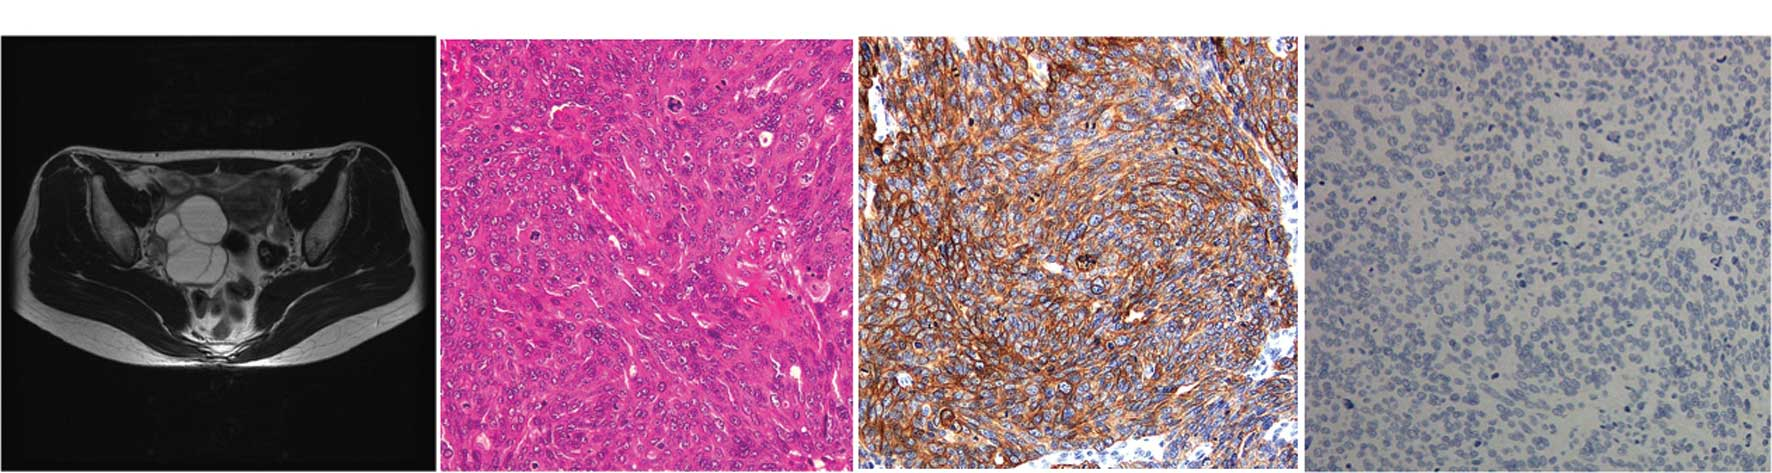 Transitional Cell Carcinoma Of The Ovary Review